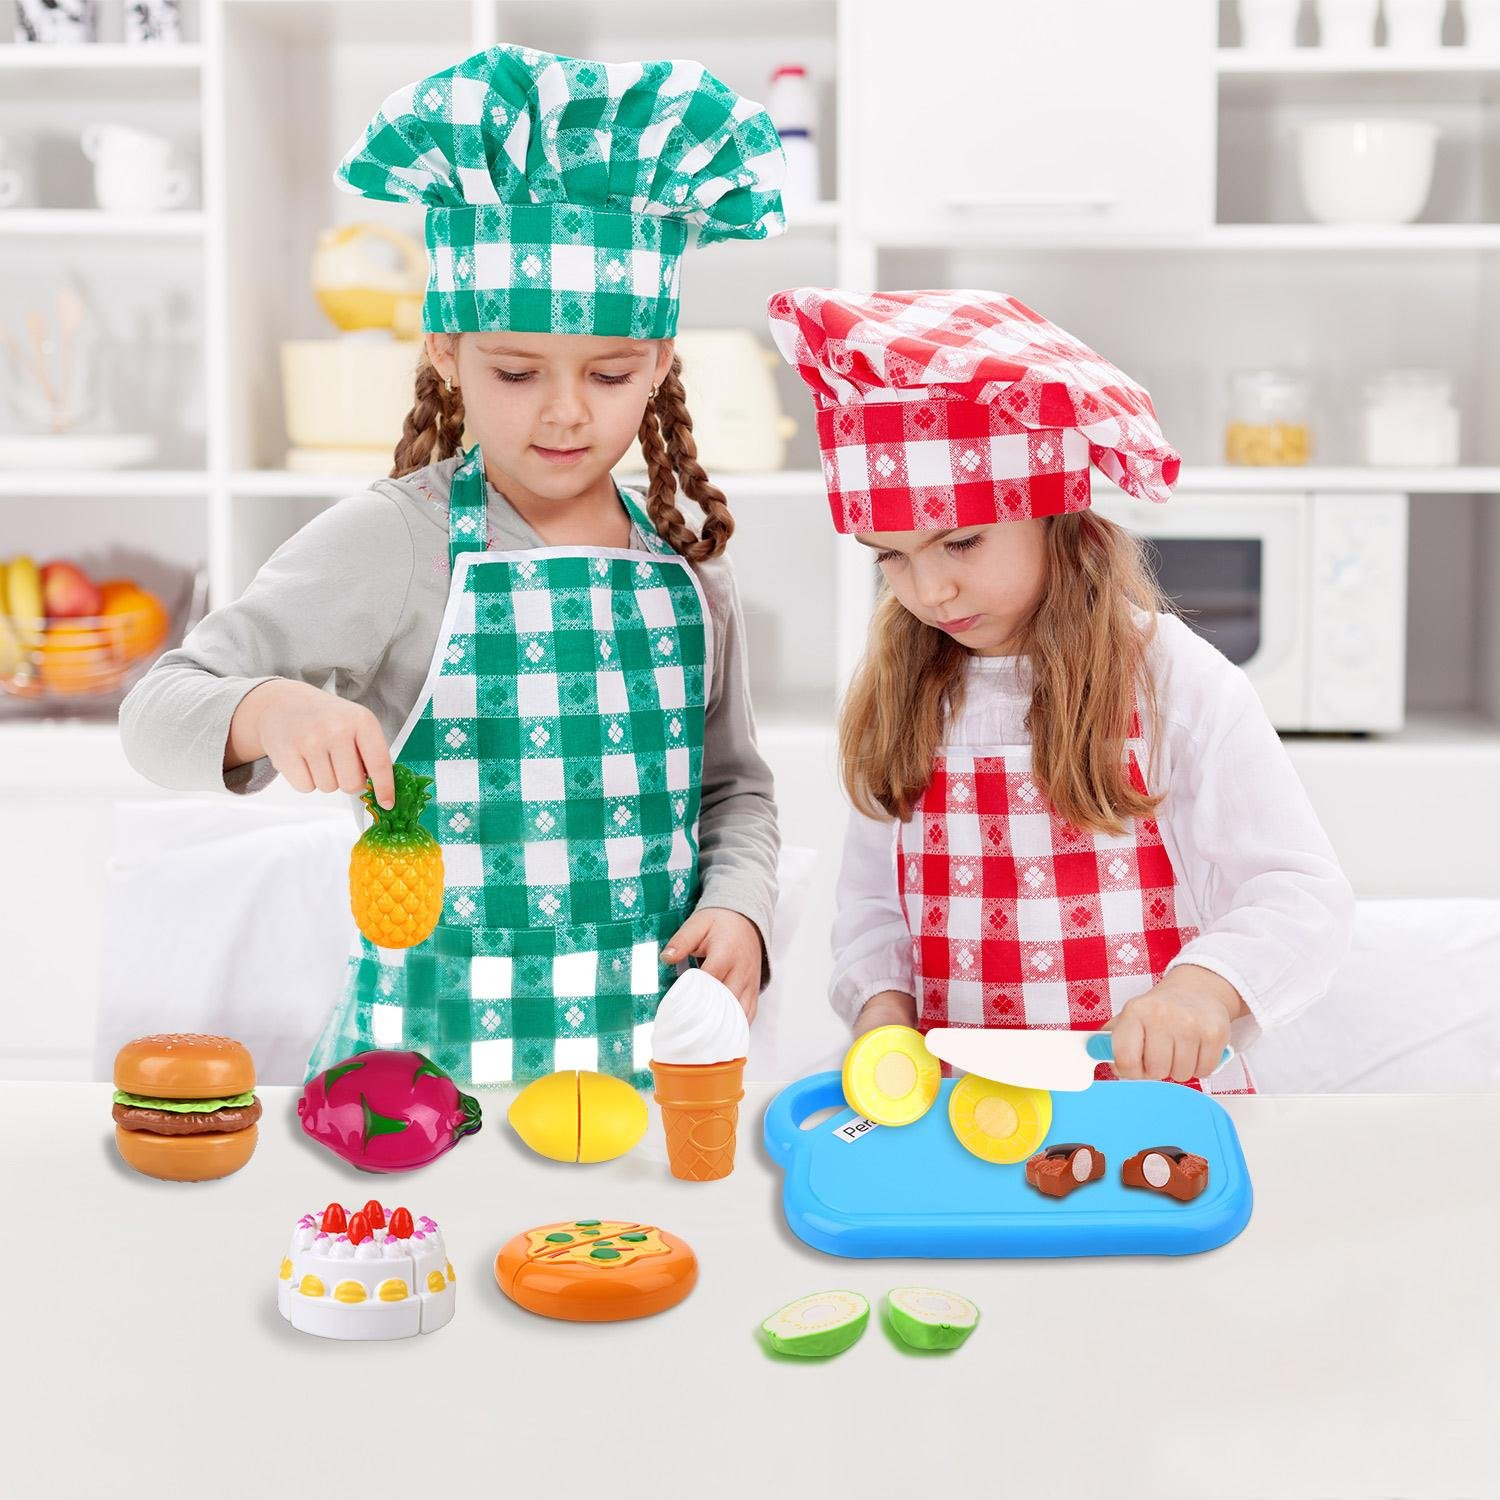 Play Food Cutting Set for Kids Kitchen Play Game with Plastic Velcro Vegetables Fruits Hamburger Cake Cutting Board Set and Apron by Peradix